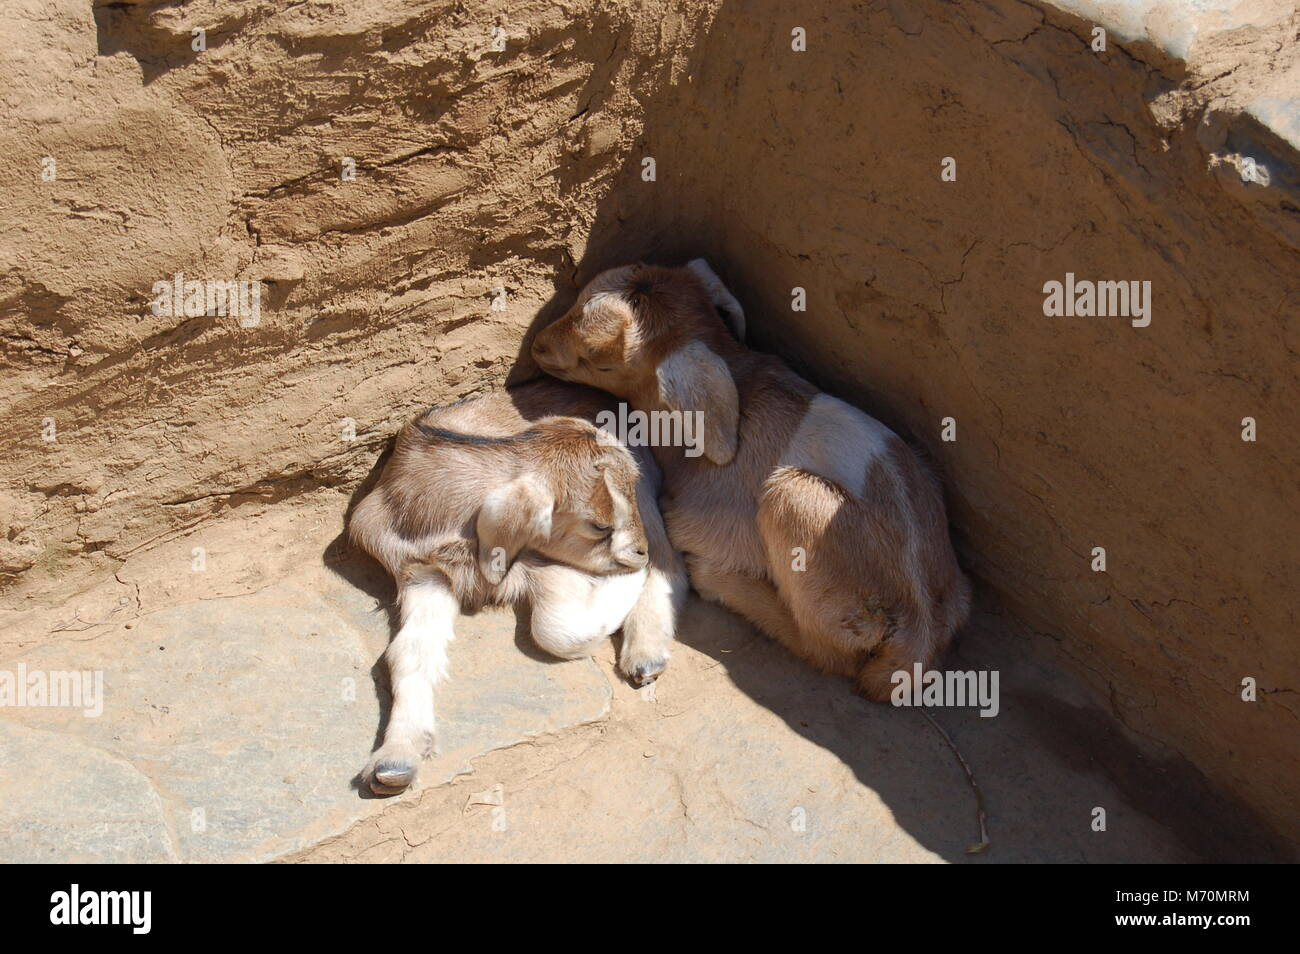 Baby goats asleep in a village in Uttarakhand, India - Stock Image